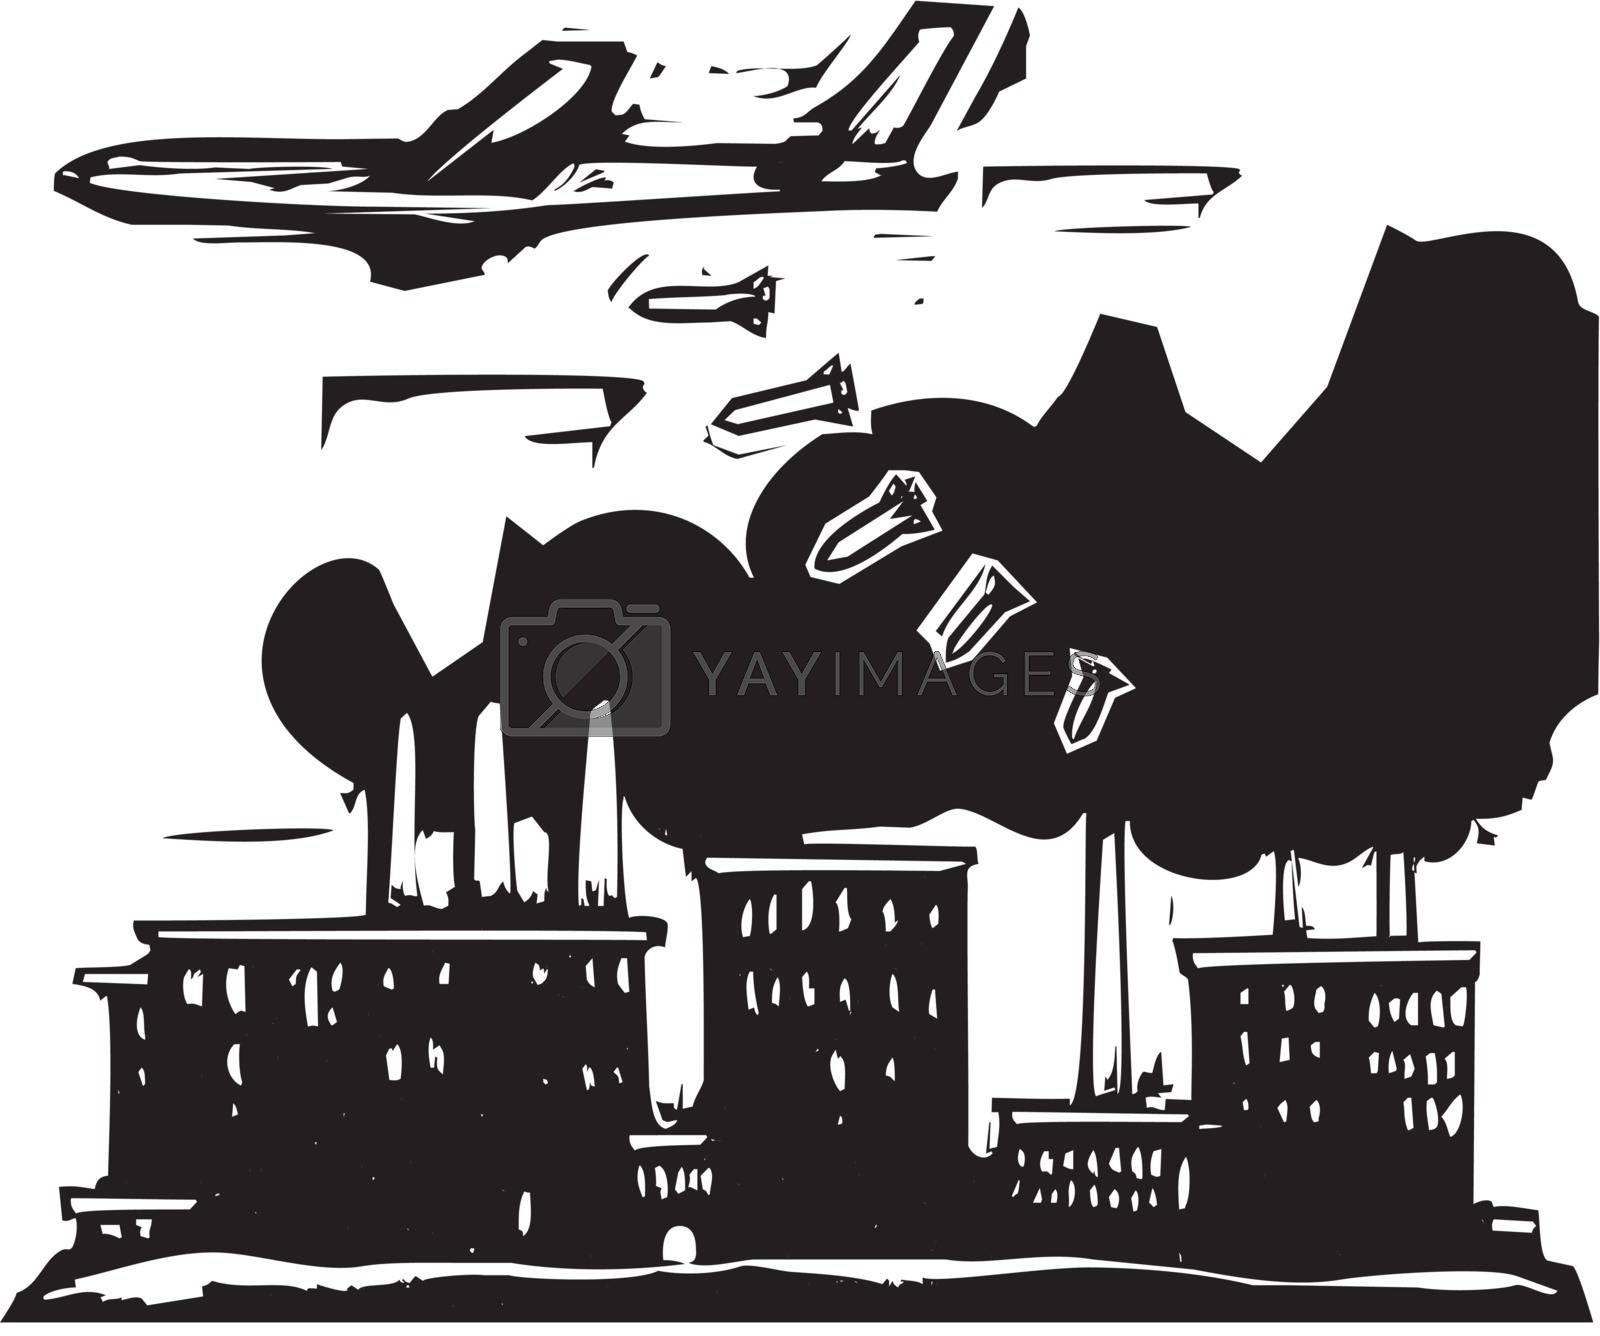 Woodcut style expressionist image of a bomber aircraft dropping bombs on a factory